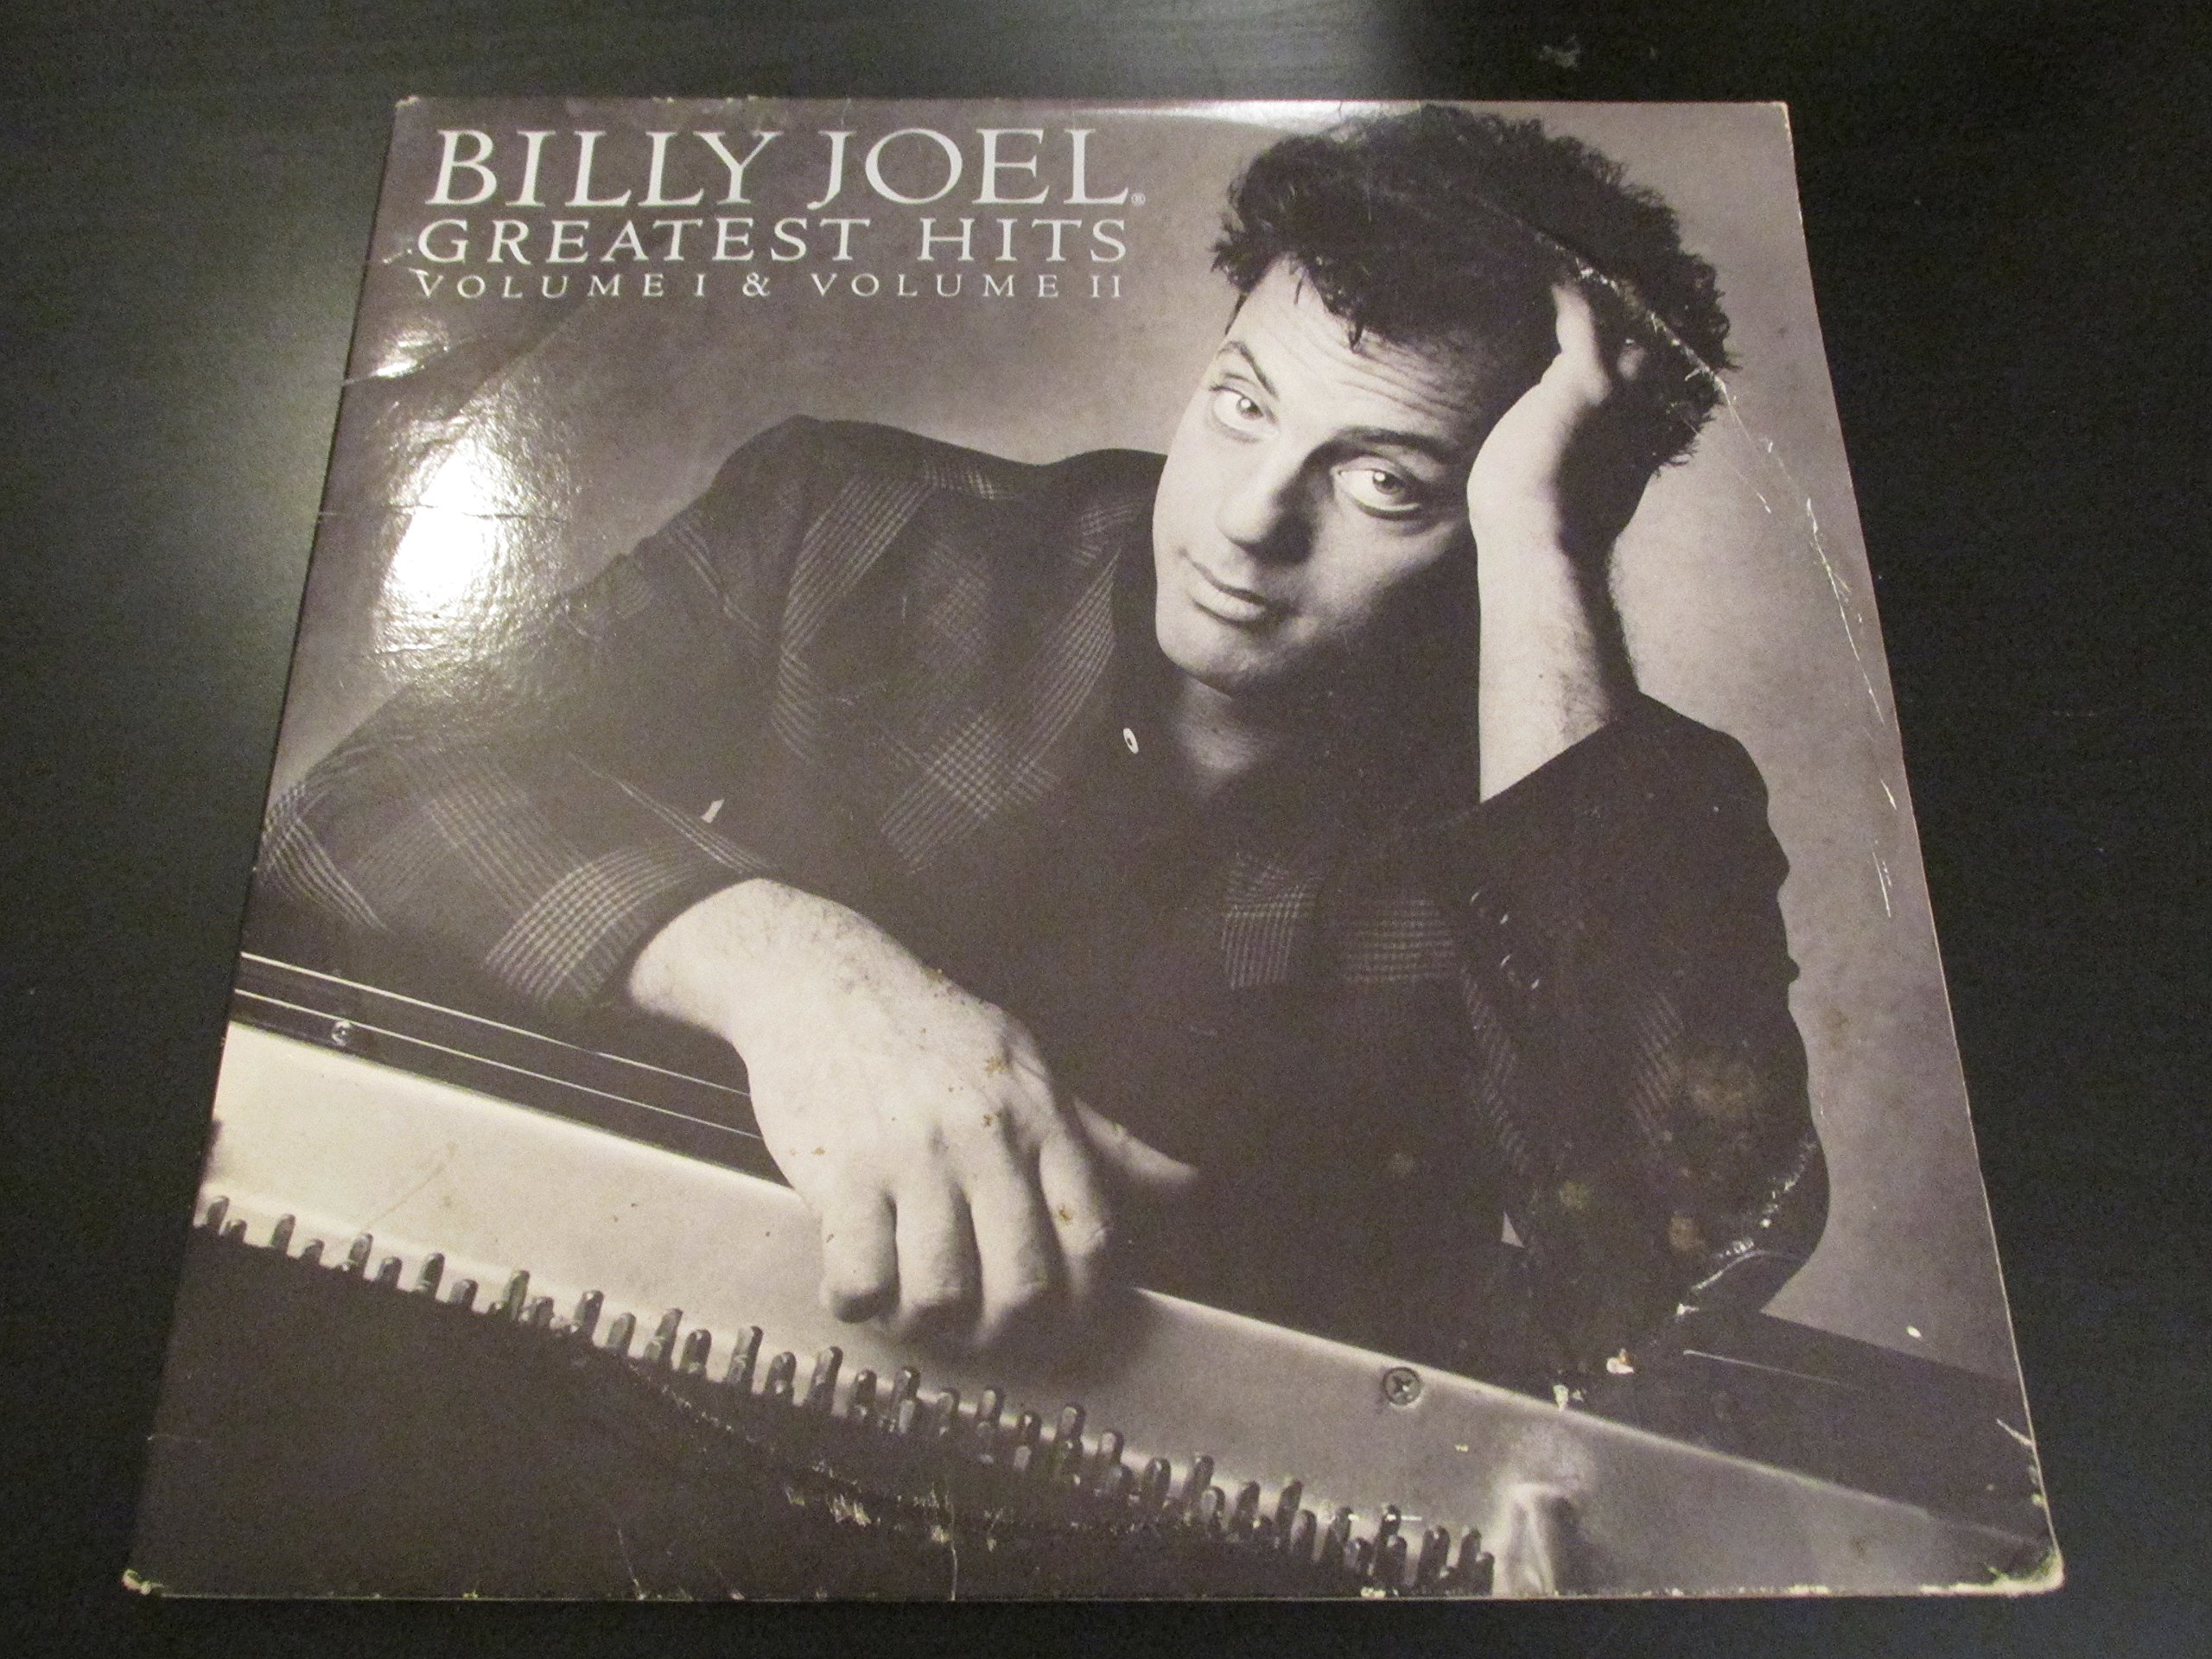 Billy Joel: Greatest Hits, Volume I and II